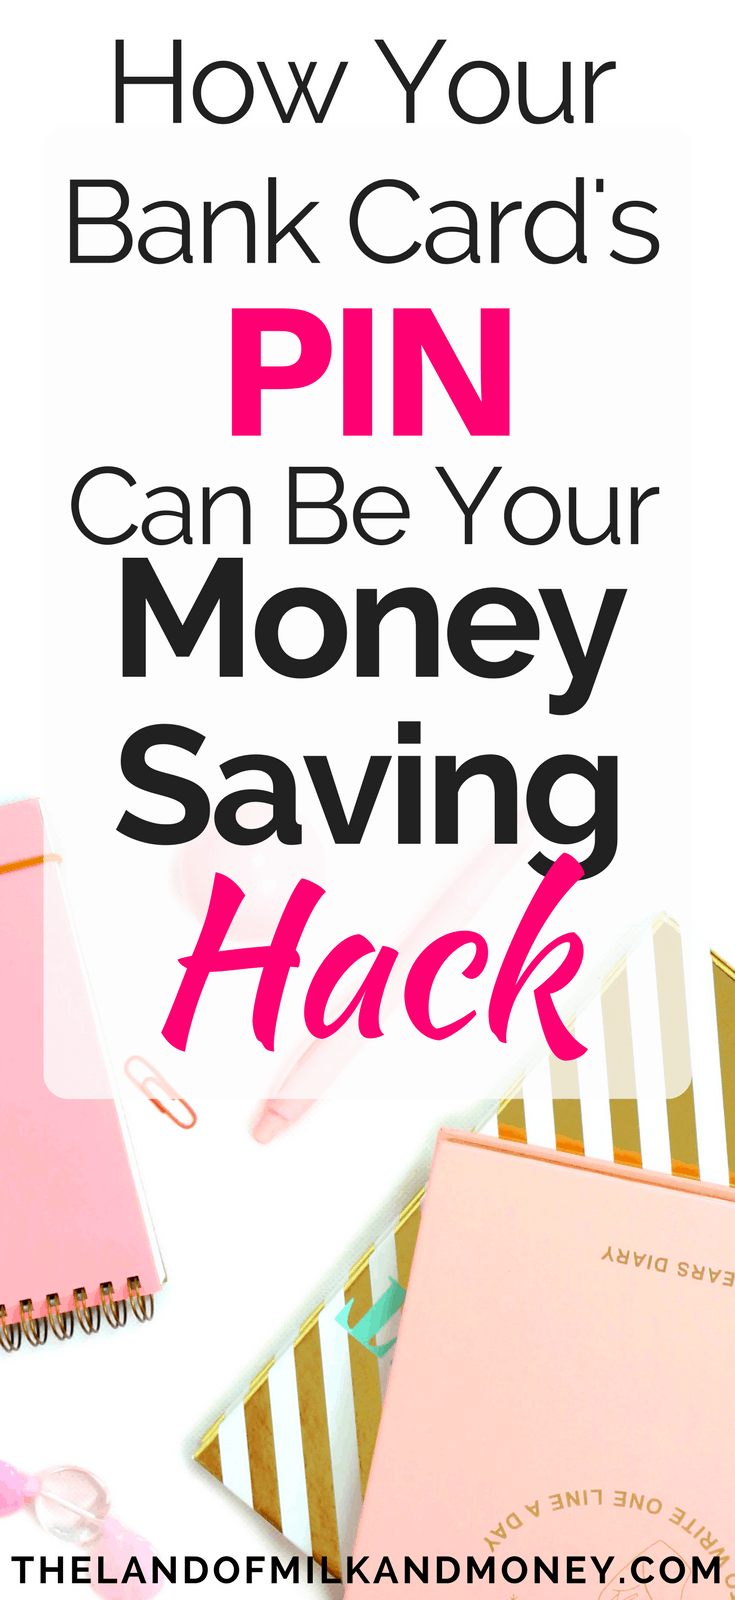 I've been trying to see how to save money for ages, so these creative ways to save money are fantastic - they let me stick to my budget and my saving money plan without even noticing! And getting some new money saving tips is great compared to the usual saving money ideas. My personal finance situation is getting better and I'll hopefully soon be debt free and reach financial peace! Great for frugal money savers like me! #savemoney #moneysavingtips #money #frugal #budget